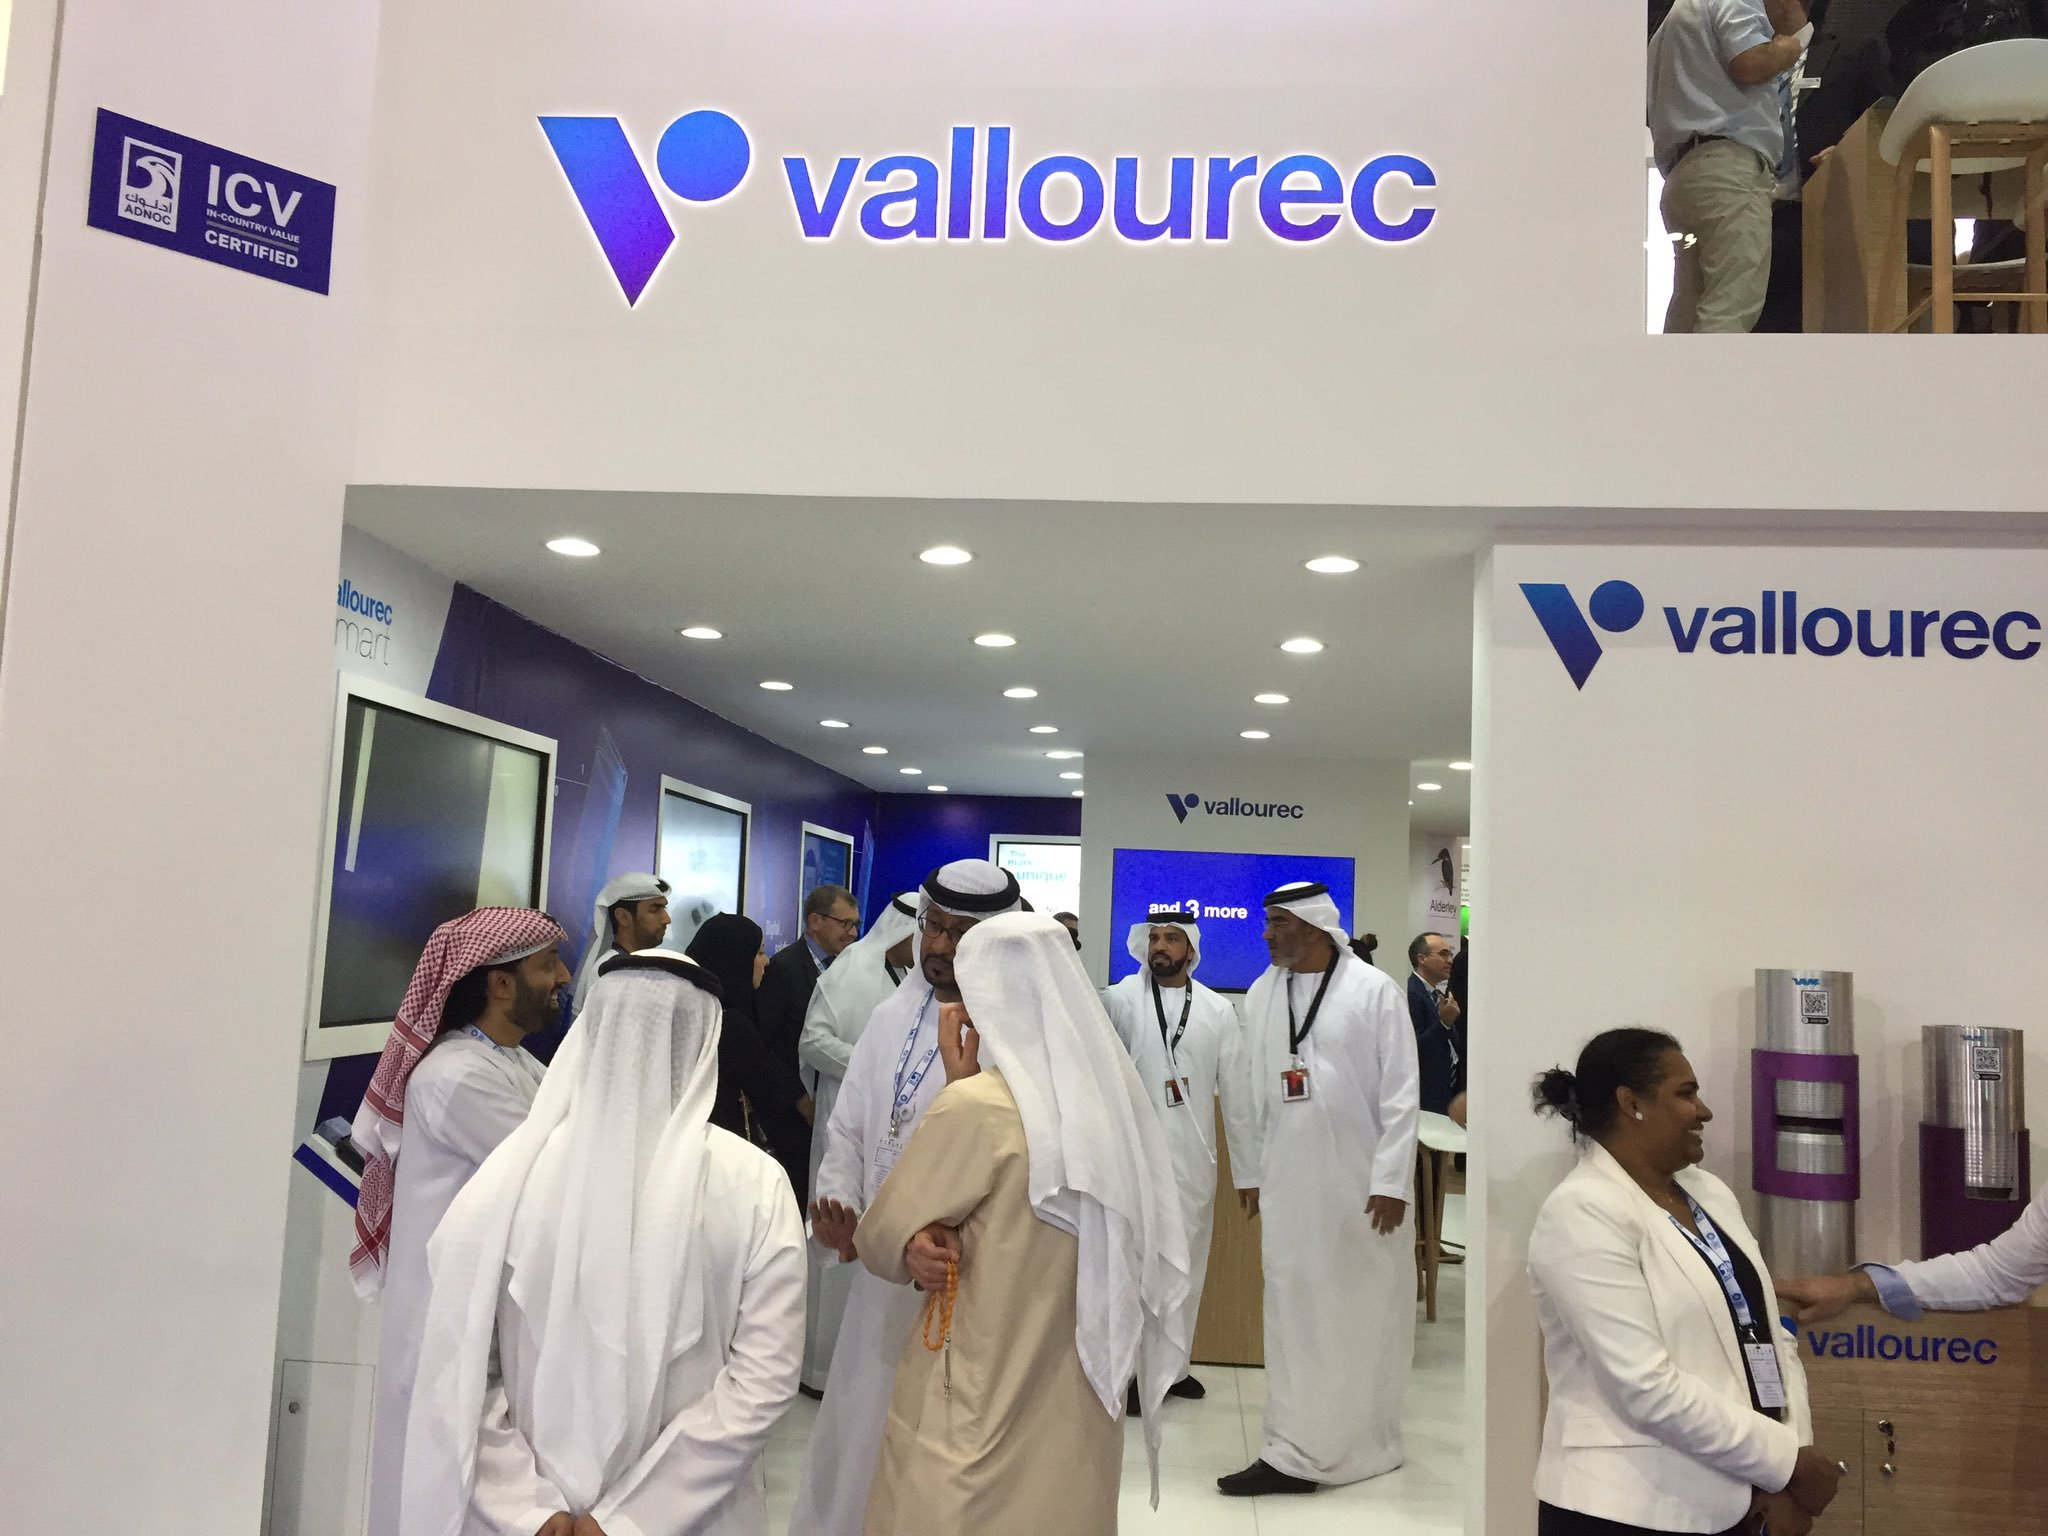 Vallourec at the ADIPEC exhibition and conference